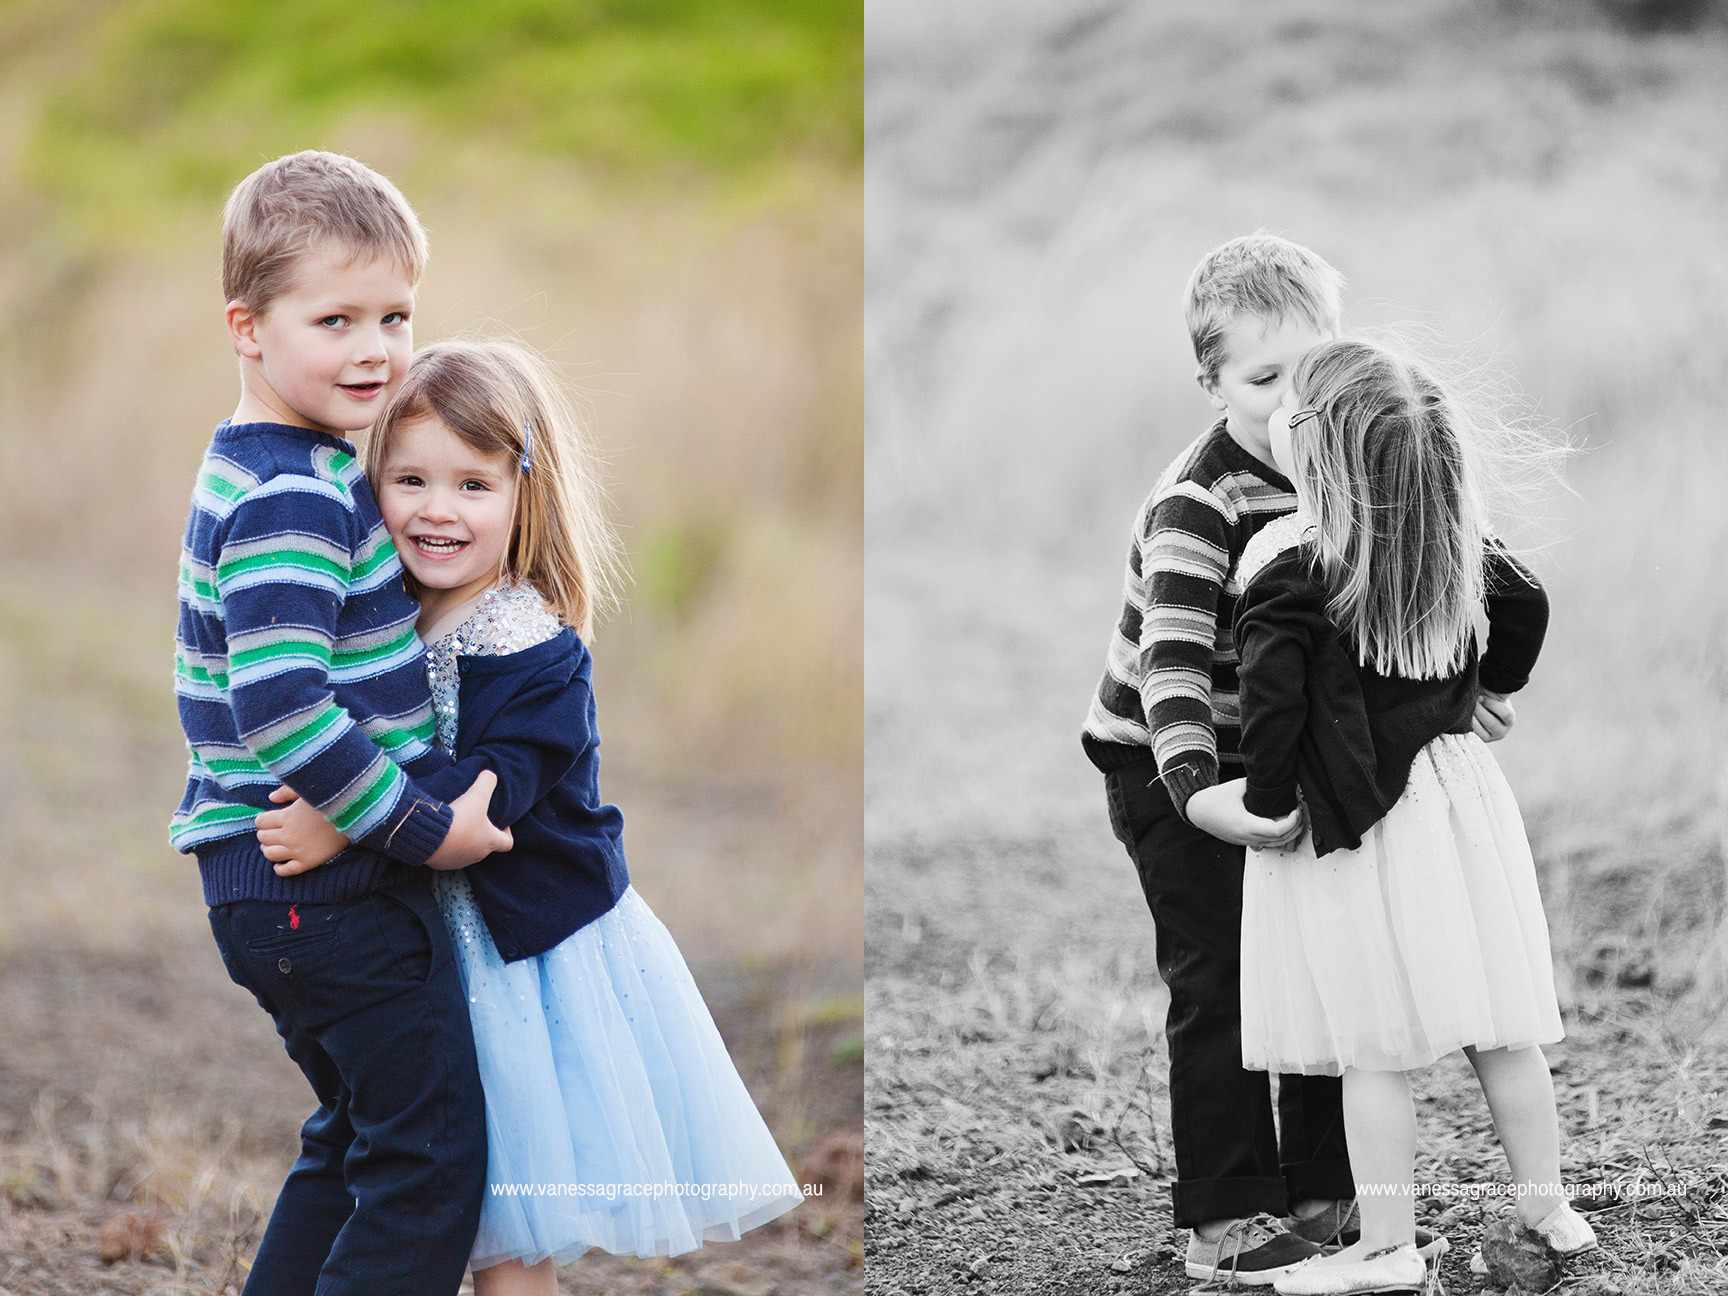 VGP_ Toowoomba Family Photographer _ 151